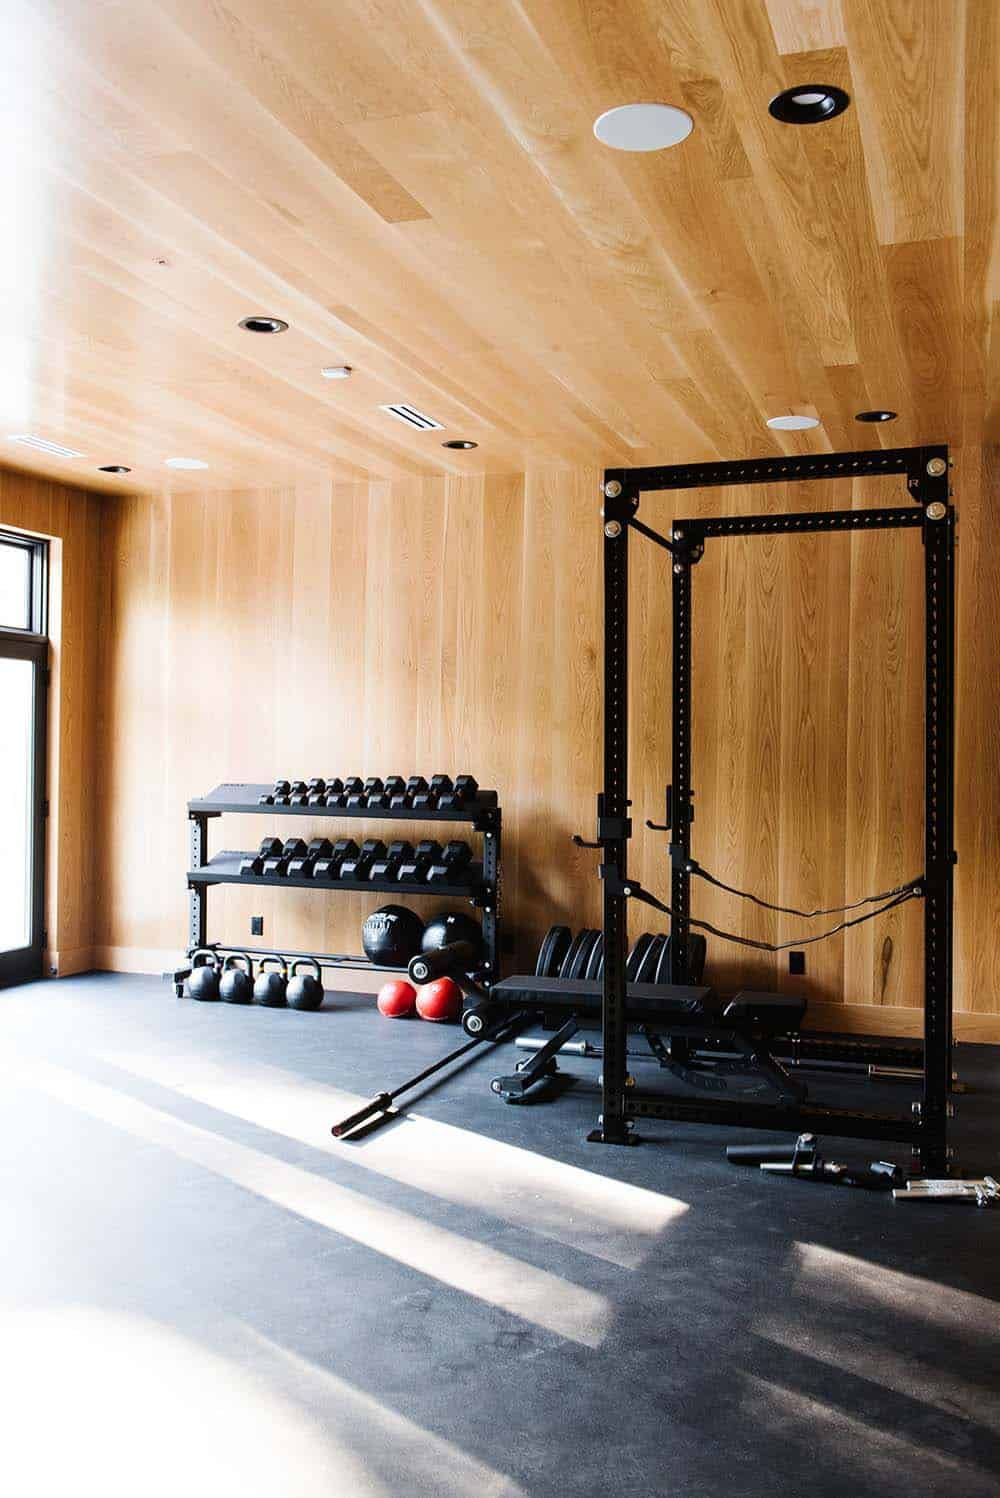 House Envy Modern Lake House In The Midwest With Stunning Details Gym Room At Home Modern Lake House Modern Home Gym